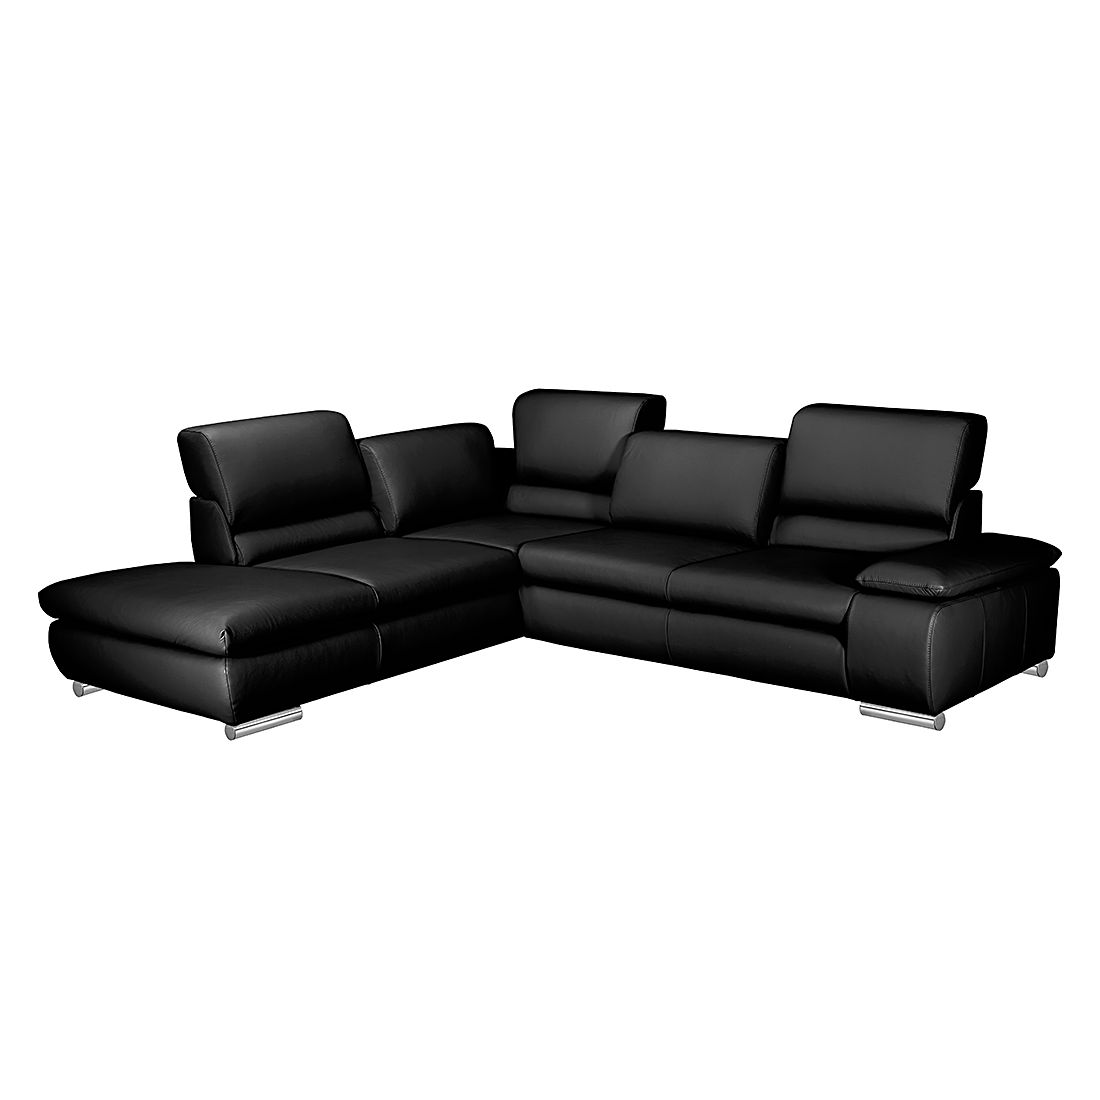 ecksofa kunstleder schwarz inspirierendes design f r wohnm bel. Black Bedroom Furniture Sets. Home Design Ideas